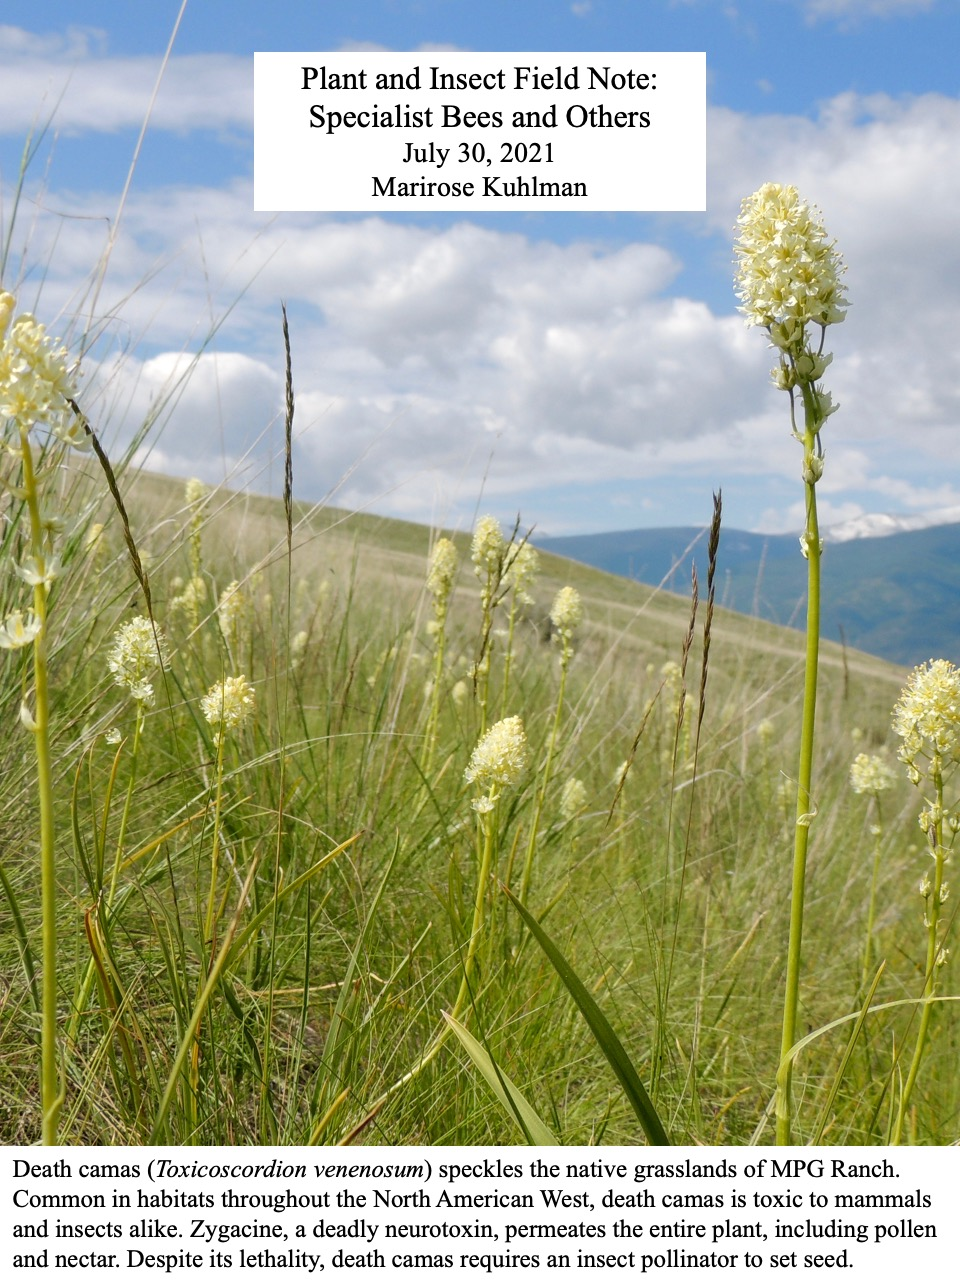 Despite its lethality, death camas requires an insect pollinator to set seed.